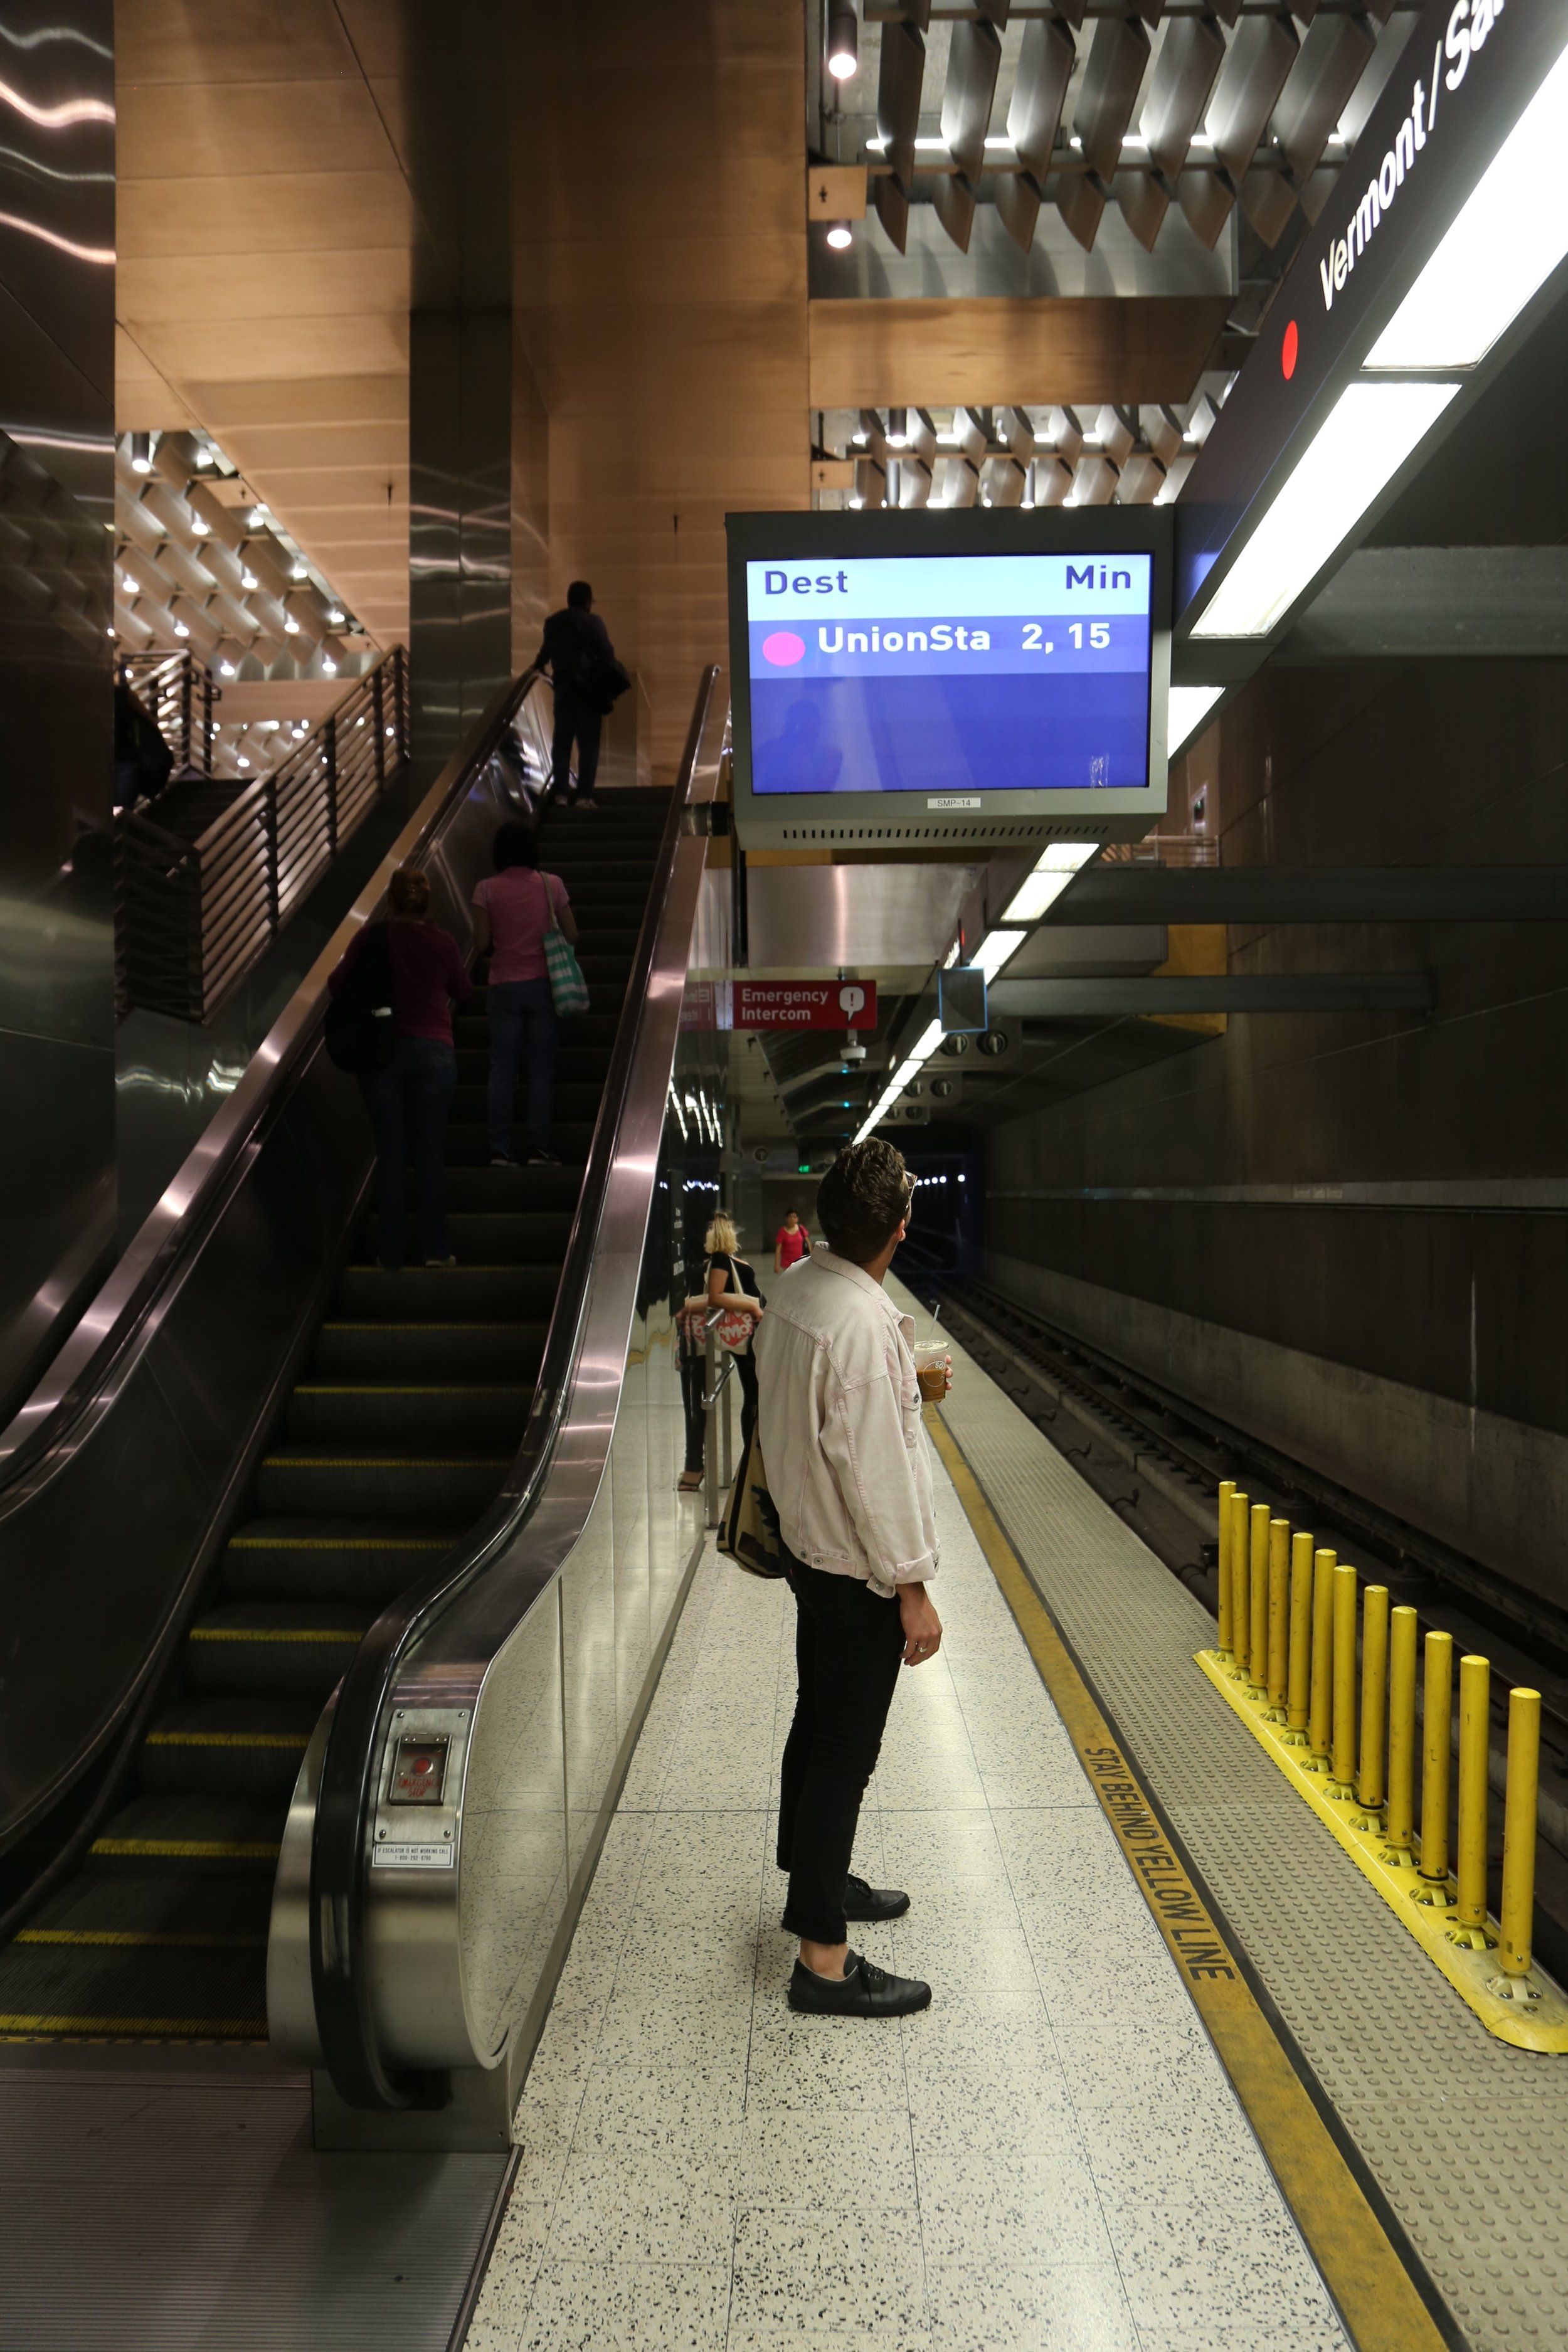 Video monitors display when the next train is coming.